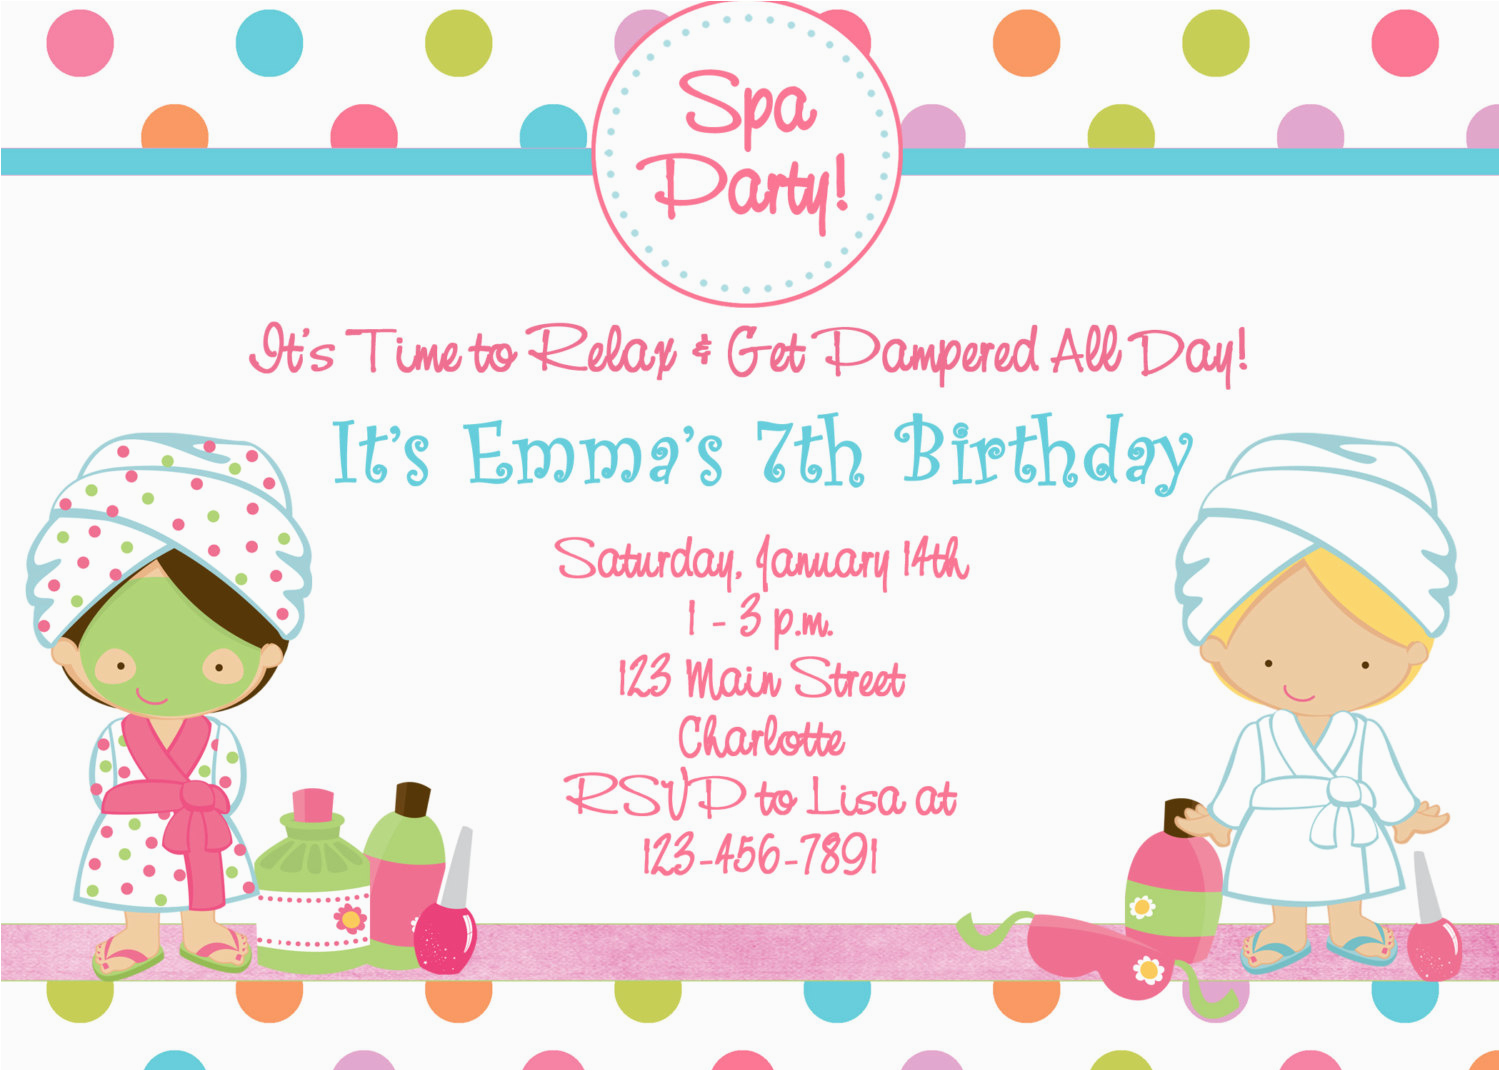 Spa Themed Birthday Party Invitations Printable Free Pool